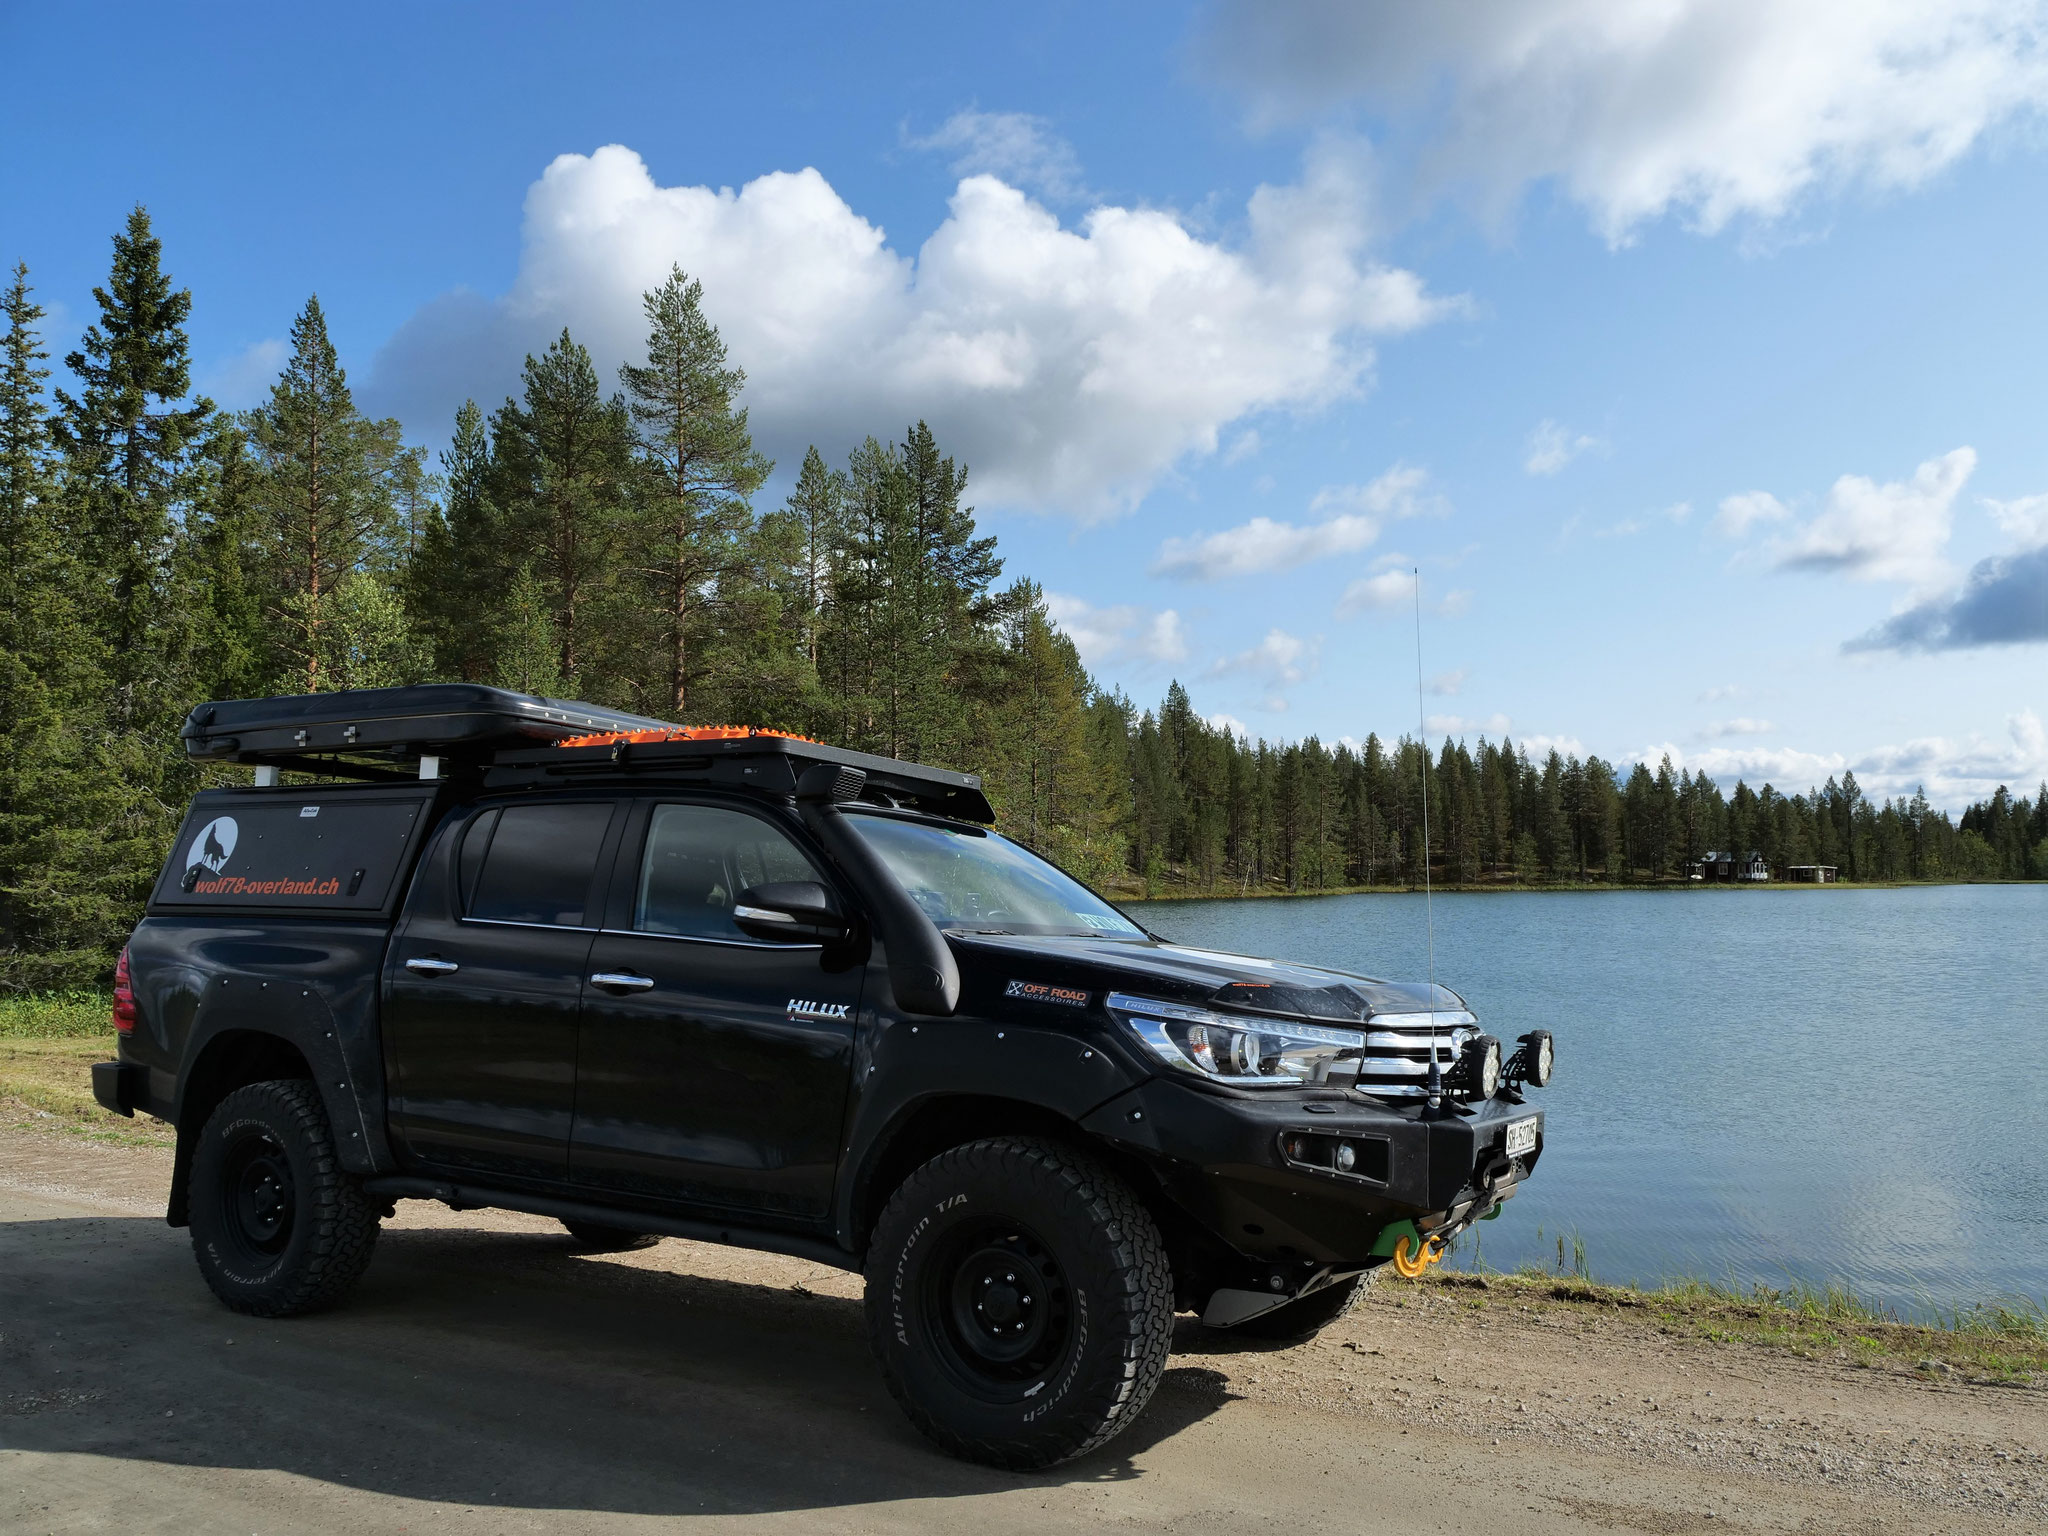 Toyota Hilux AFN Roof top tent Dachzelt Frontrunner Rocksliders Horntools Winch alpha quick TJM Snorkel Revo #ProjektBlackwolf 2016 2017 2.4 wolf78-overland.ch offroad 4x4 Rival James Baroud BFGoodrich 32 inc tires wolf78 ARB Alu-cab